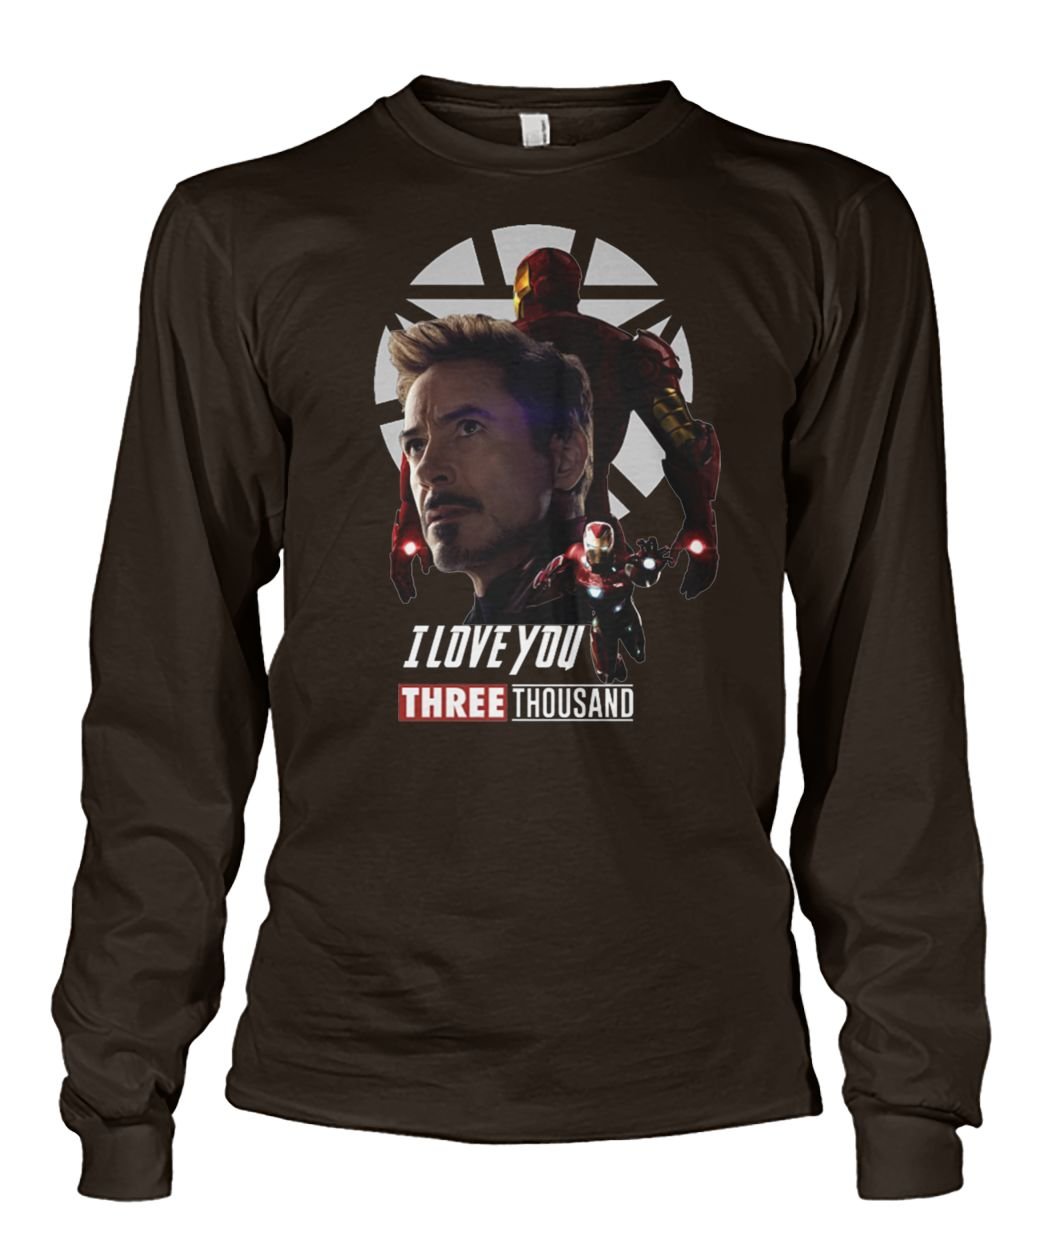 Avenger endgame iron man I love you three thousand unisex long sleeve